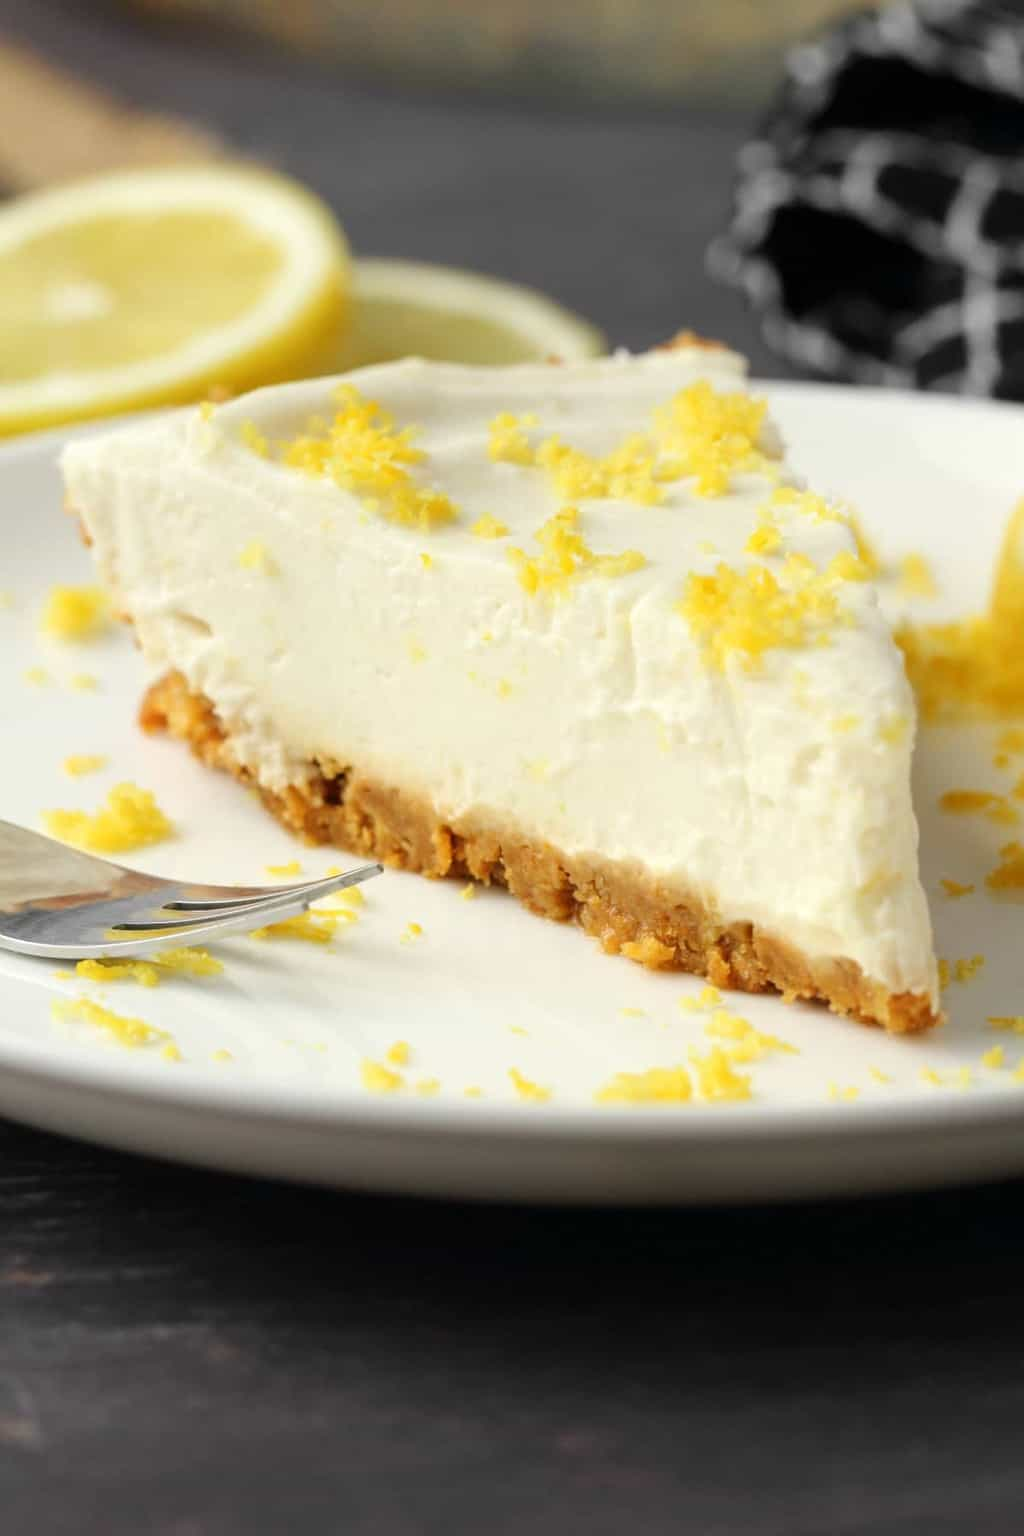 Slice of vegan lemon pie on a white plate with a cake fork.